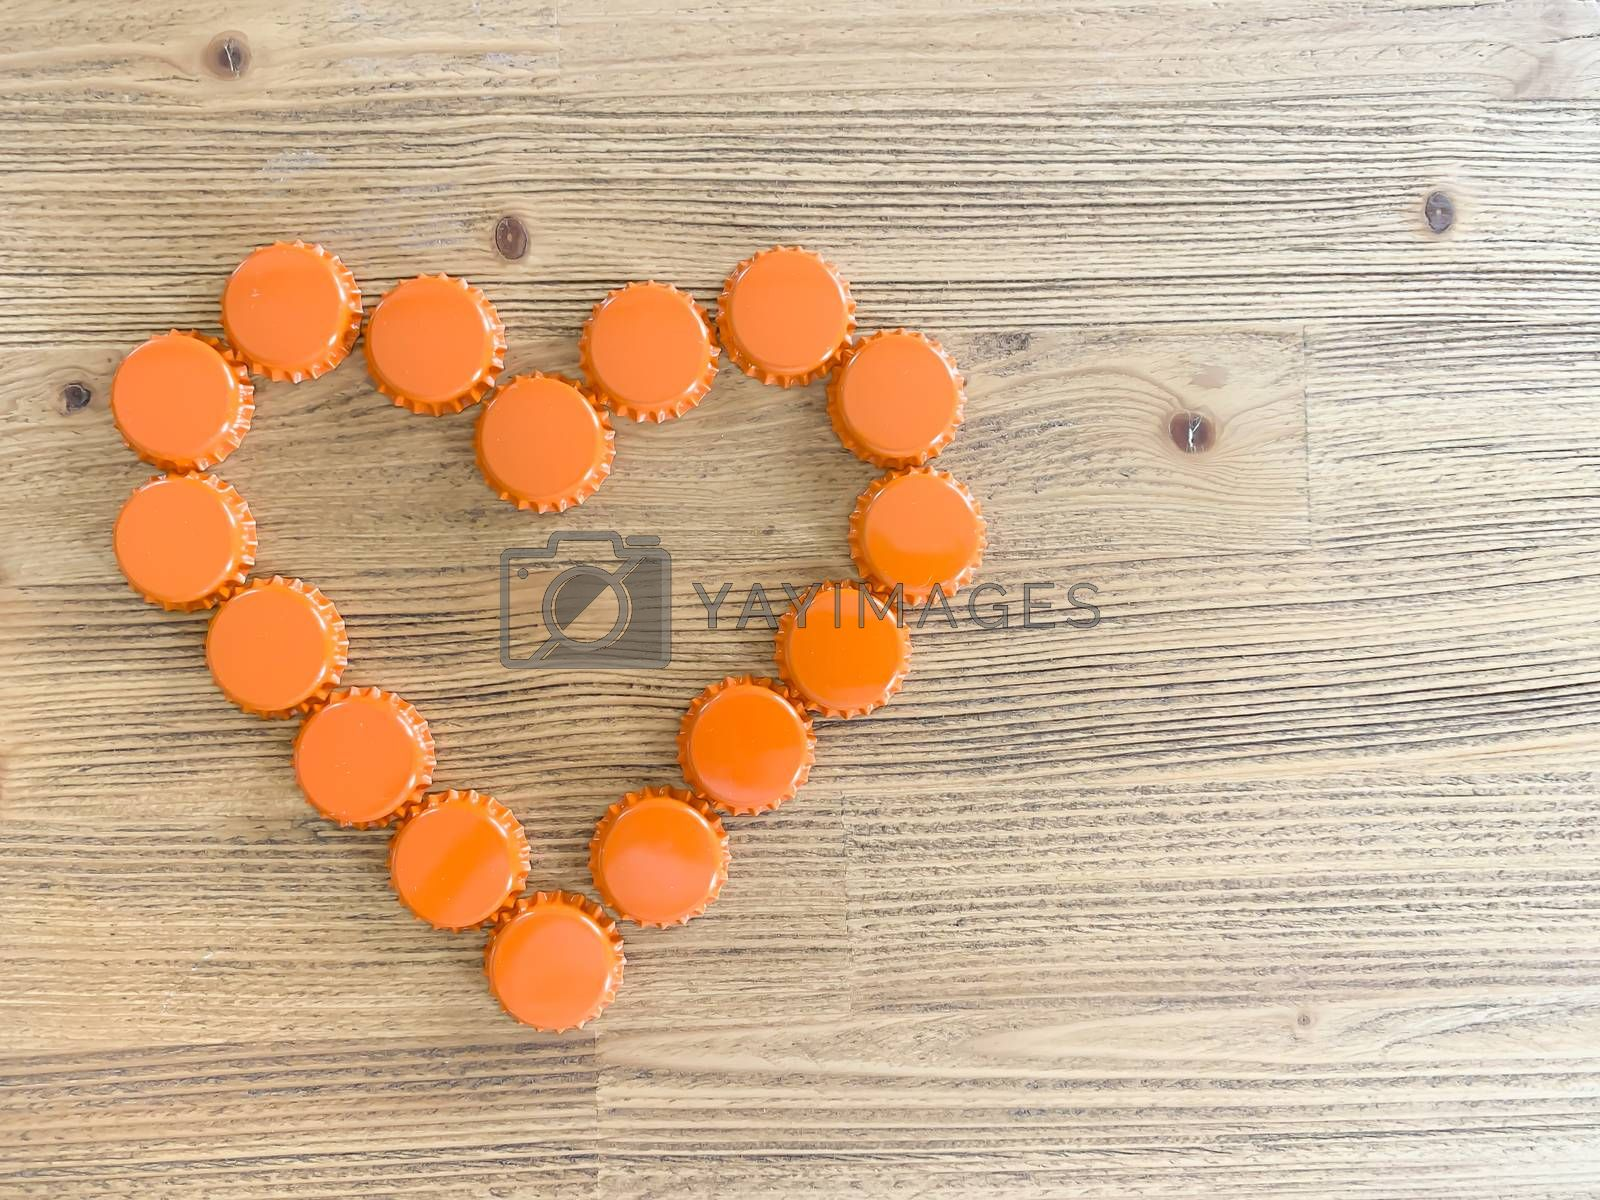 An orange love heart made from beer bottle tops lids on a rustic wooden table. Beer drinkers Valentine's day concept top view horizontal image with empty space for text